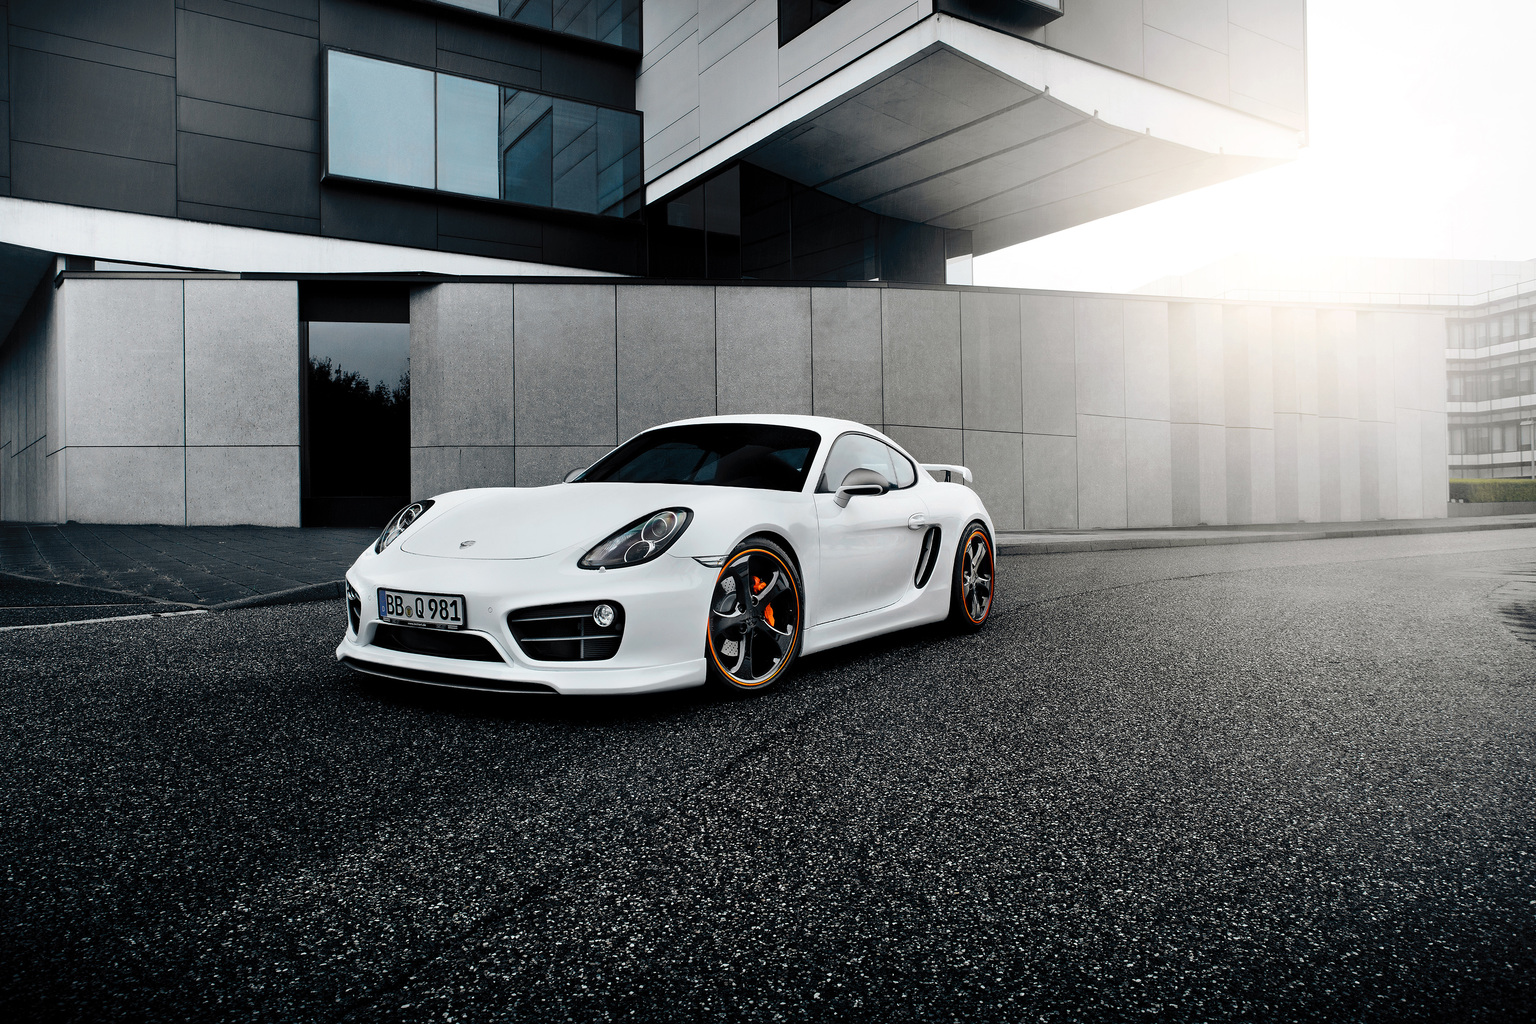 2013 TechArt Cayman